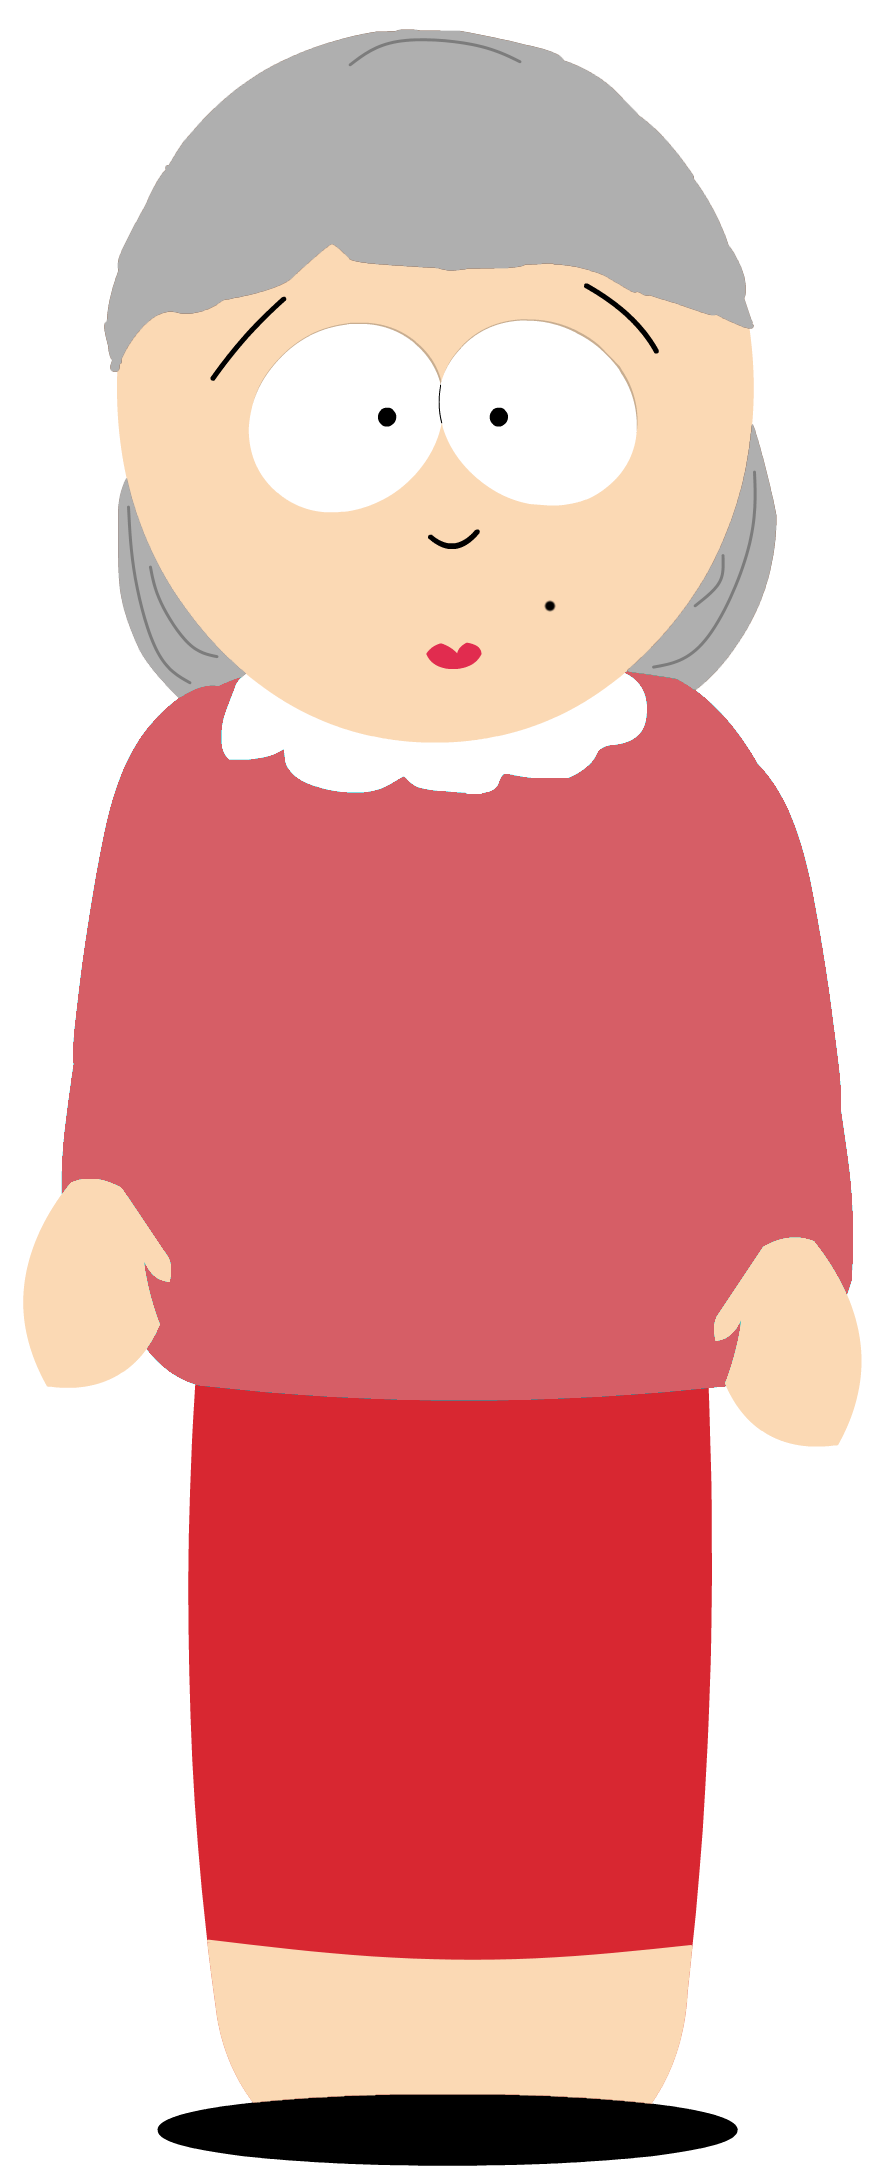 Cartman transparent older. Future liane by celcolevi